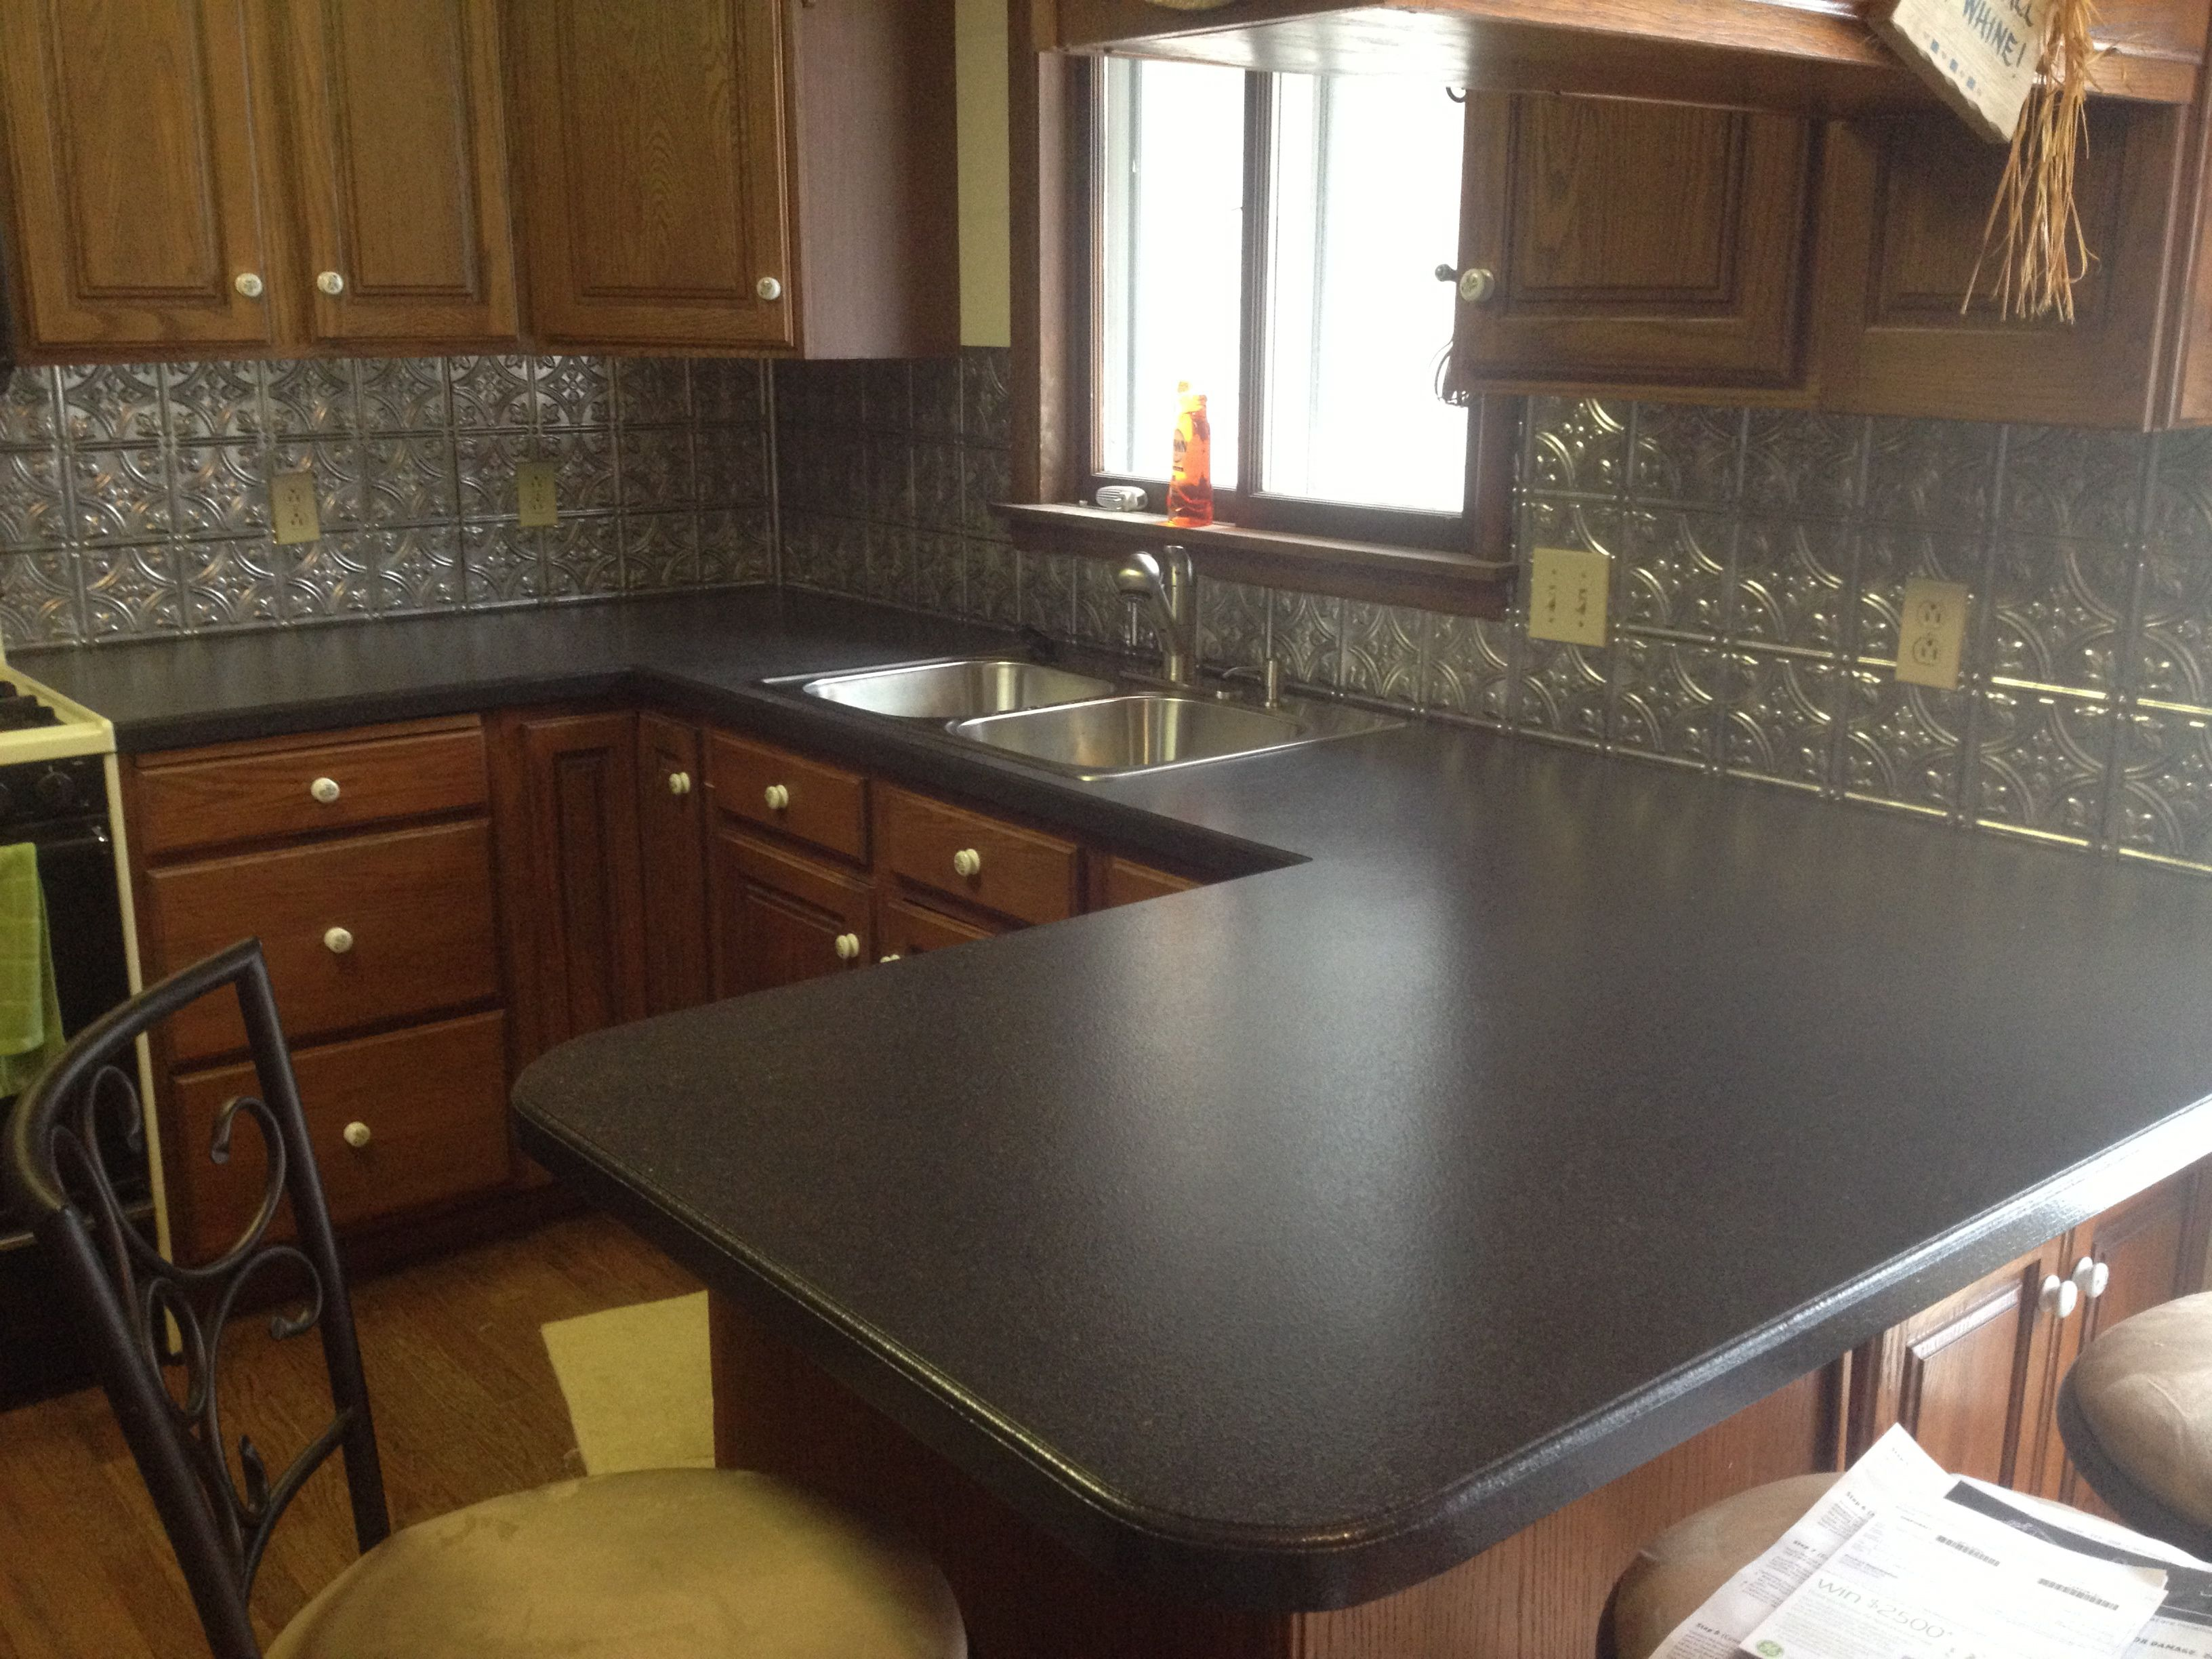 Black Kitchen Countertop Black Corian Vs Granite Countertop With Tile Backsplash